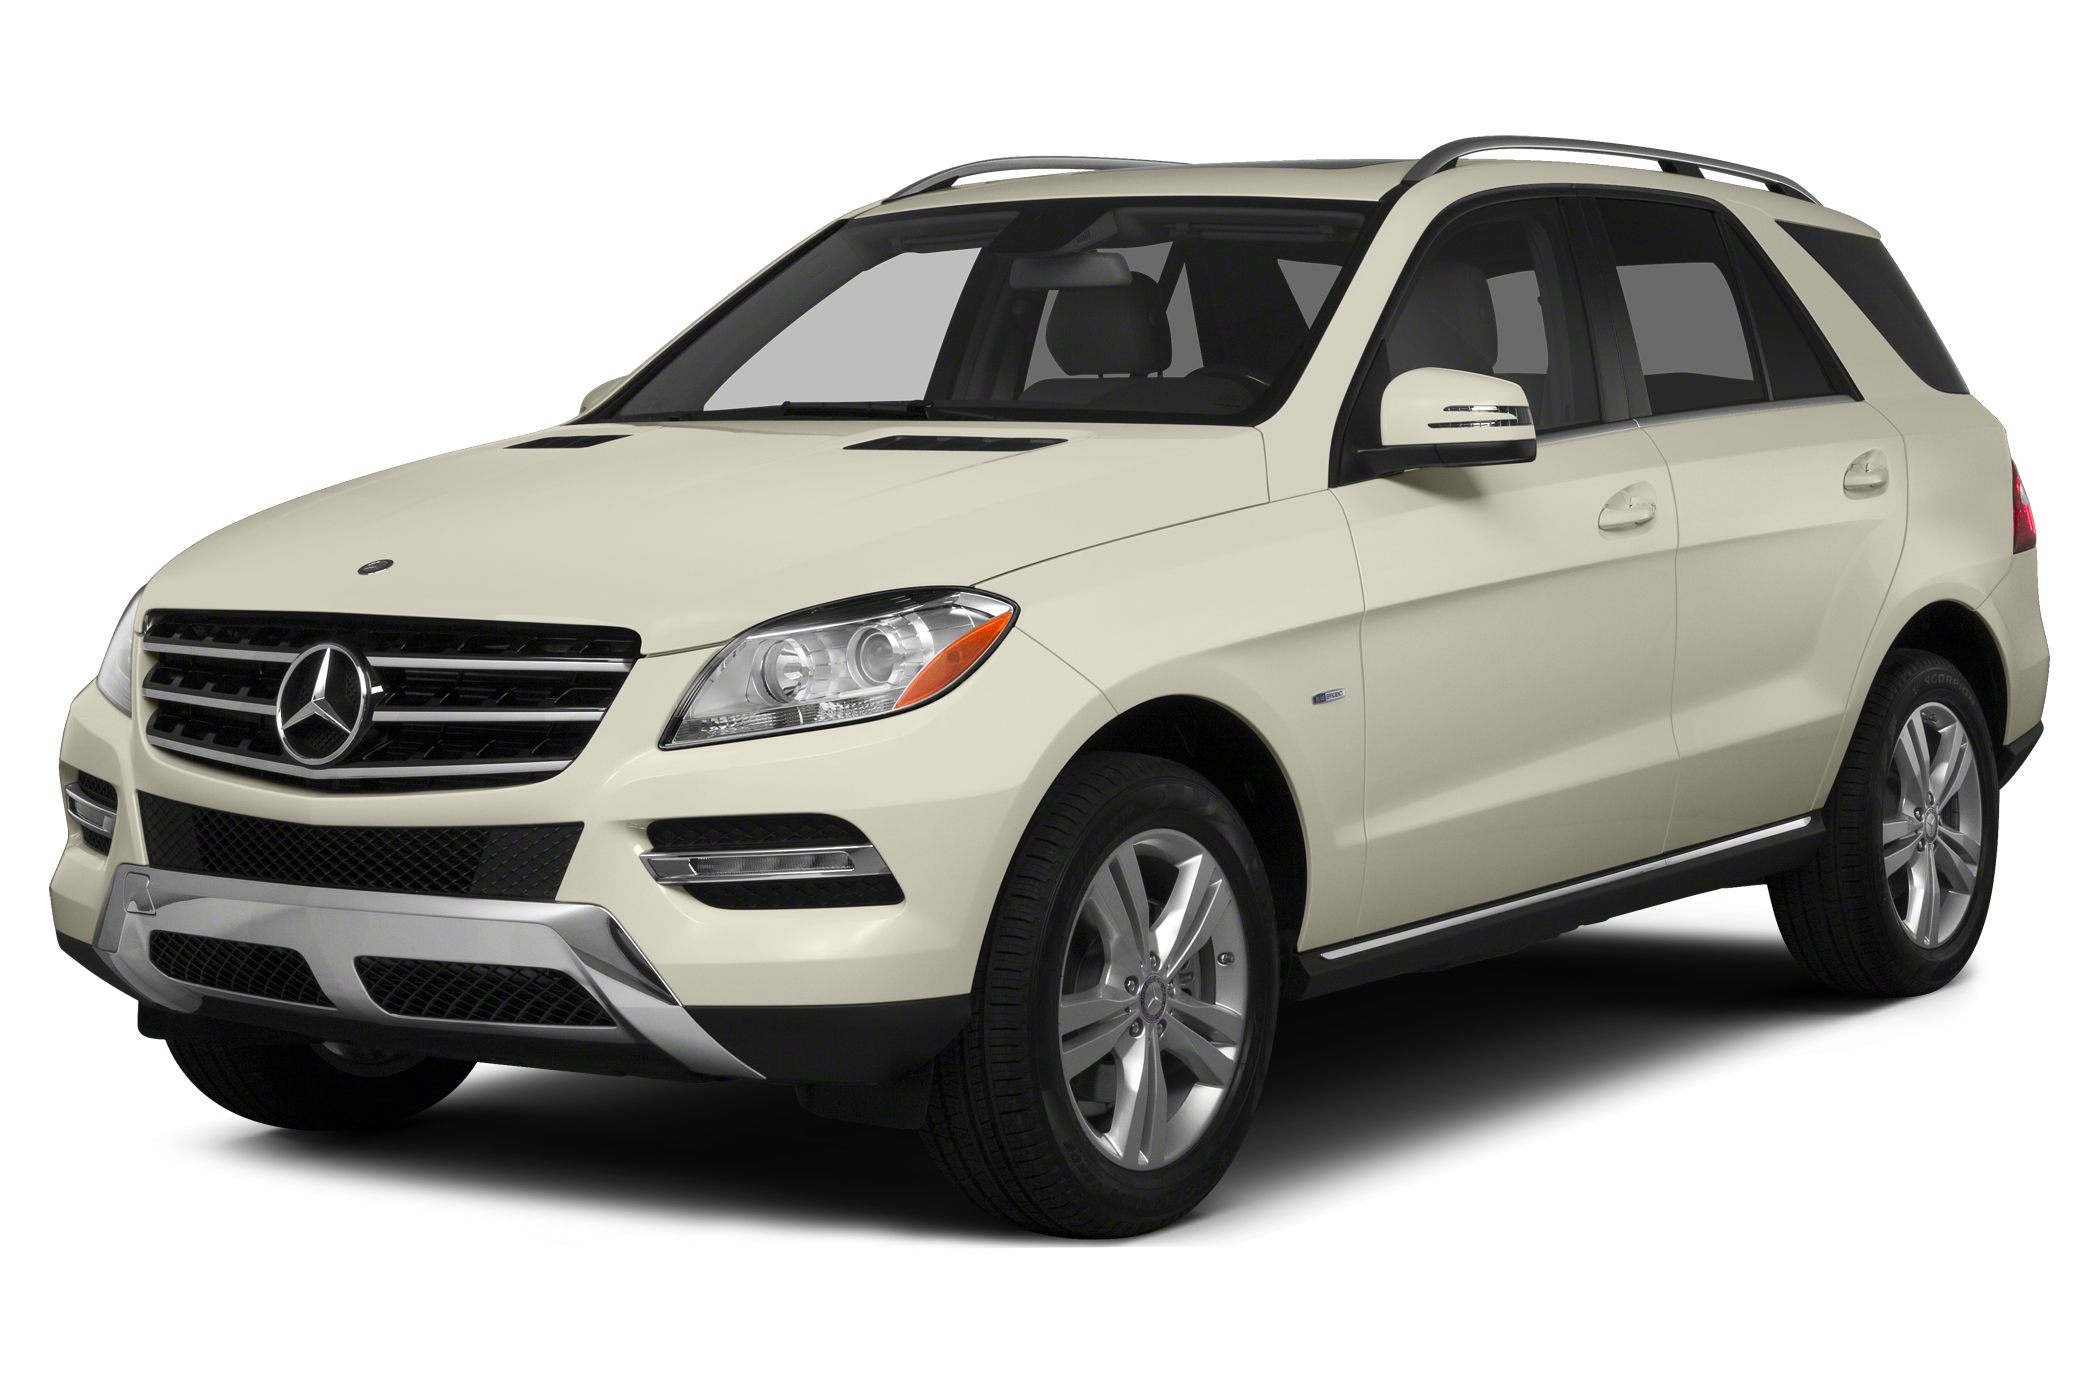 2015 Mercedes-Benz M-Class ML350 SUV for sale in West Palm Beach for $55,110 with 1 miles.